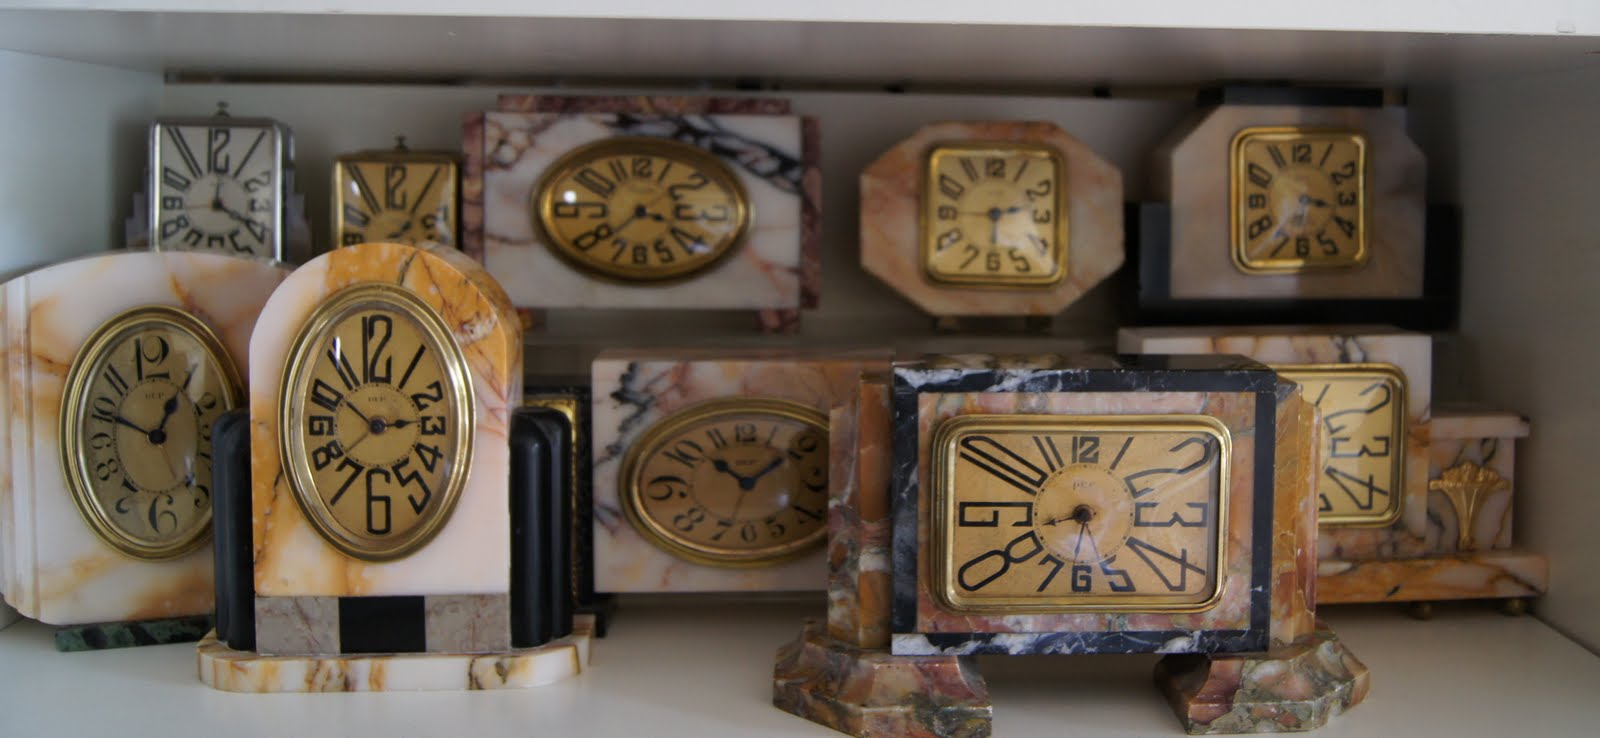 art deco clocks dep clocks continued. Black Bedroom Furniture Sets. Home Design Ideas